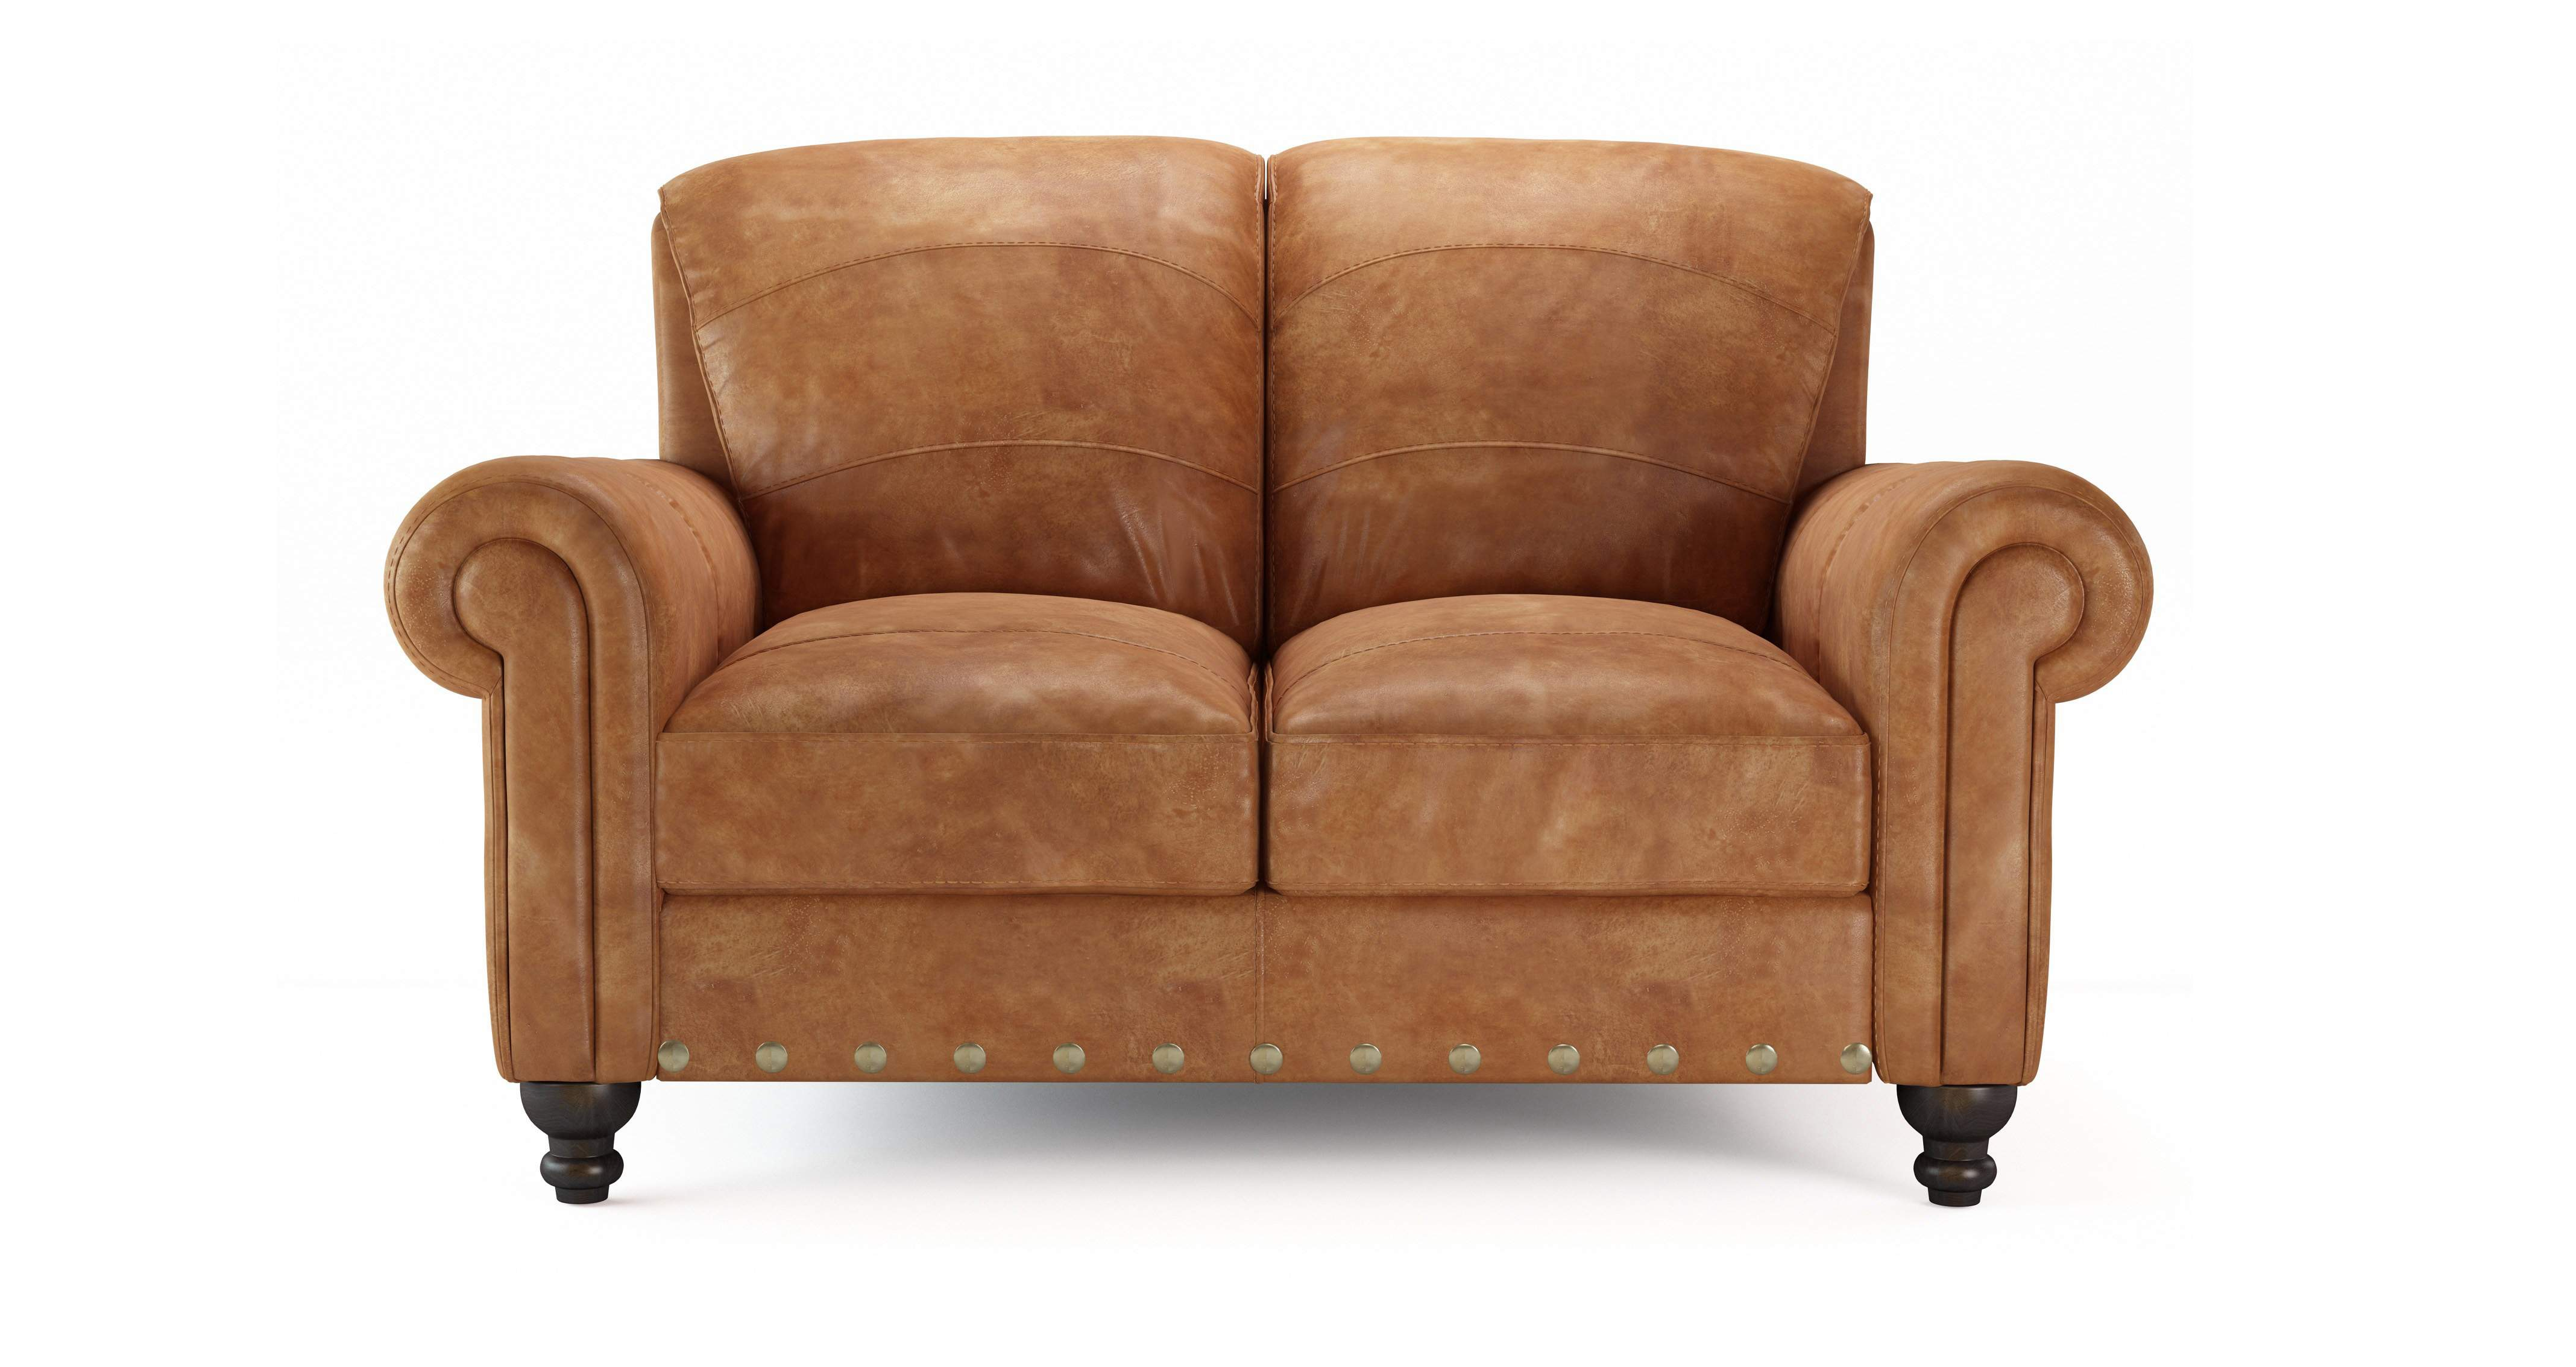 Dfs Perth 2 Seater 100 Natural Leather Sofa In Ranch